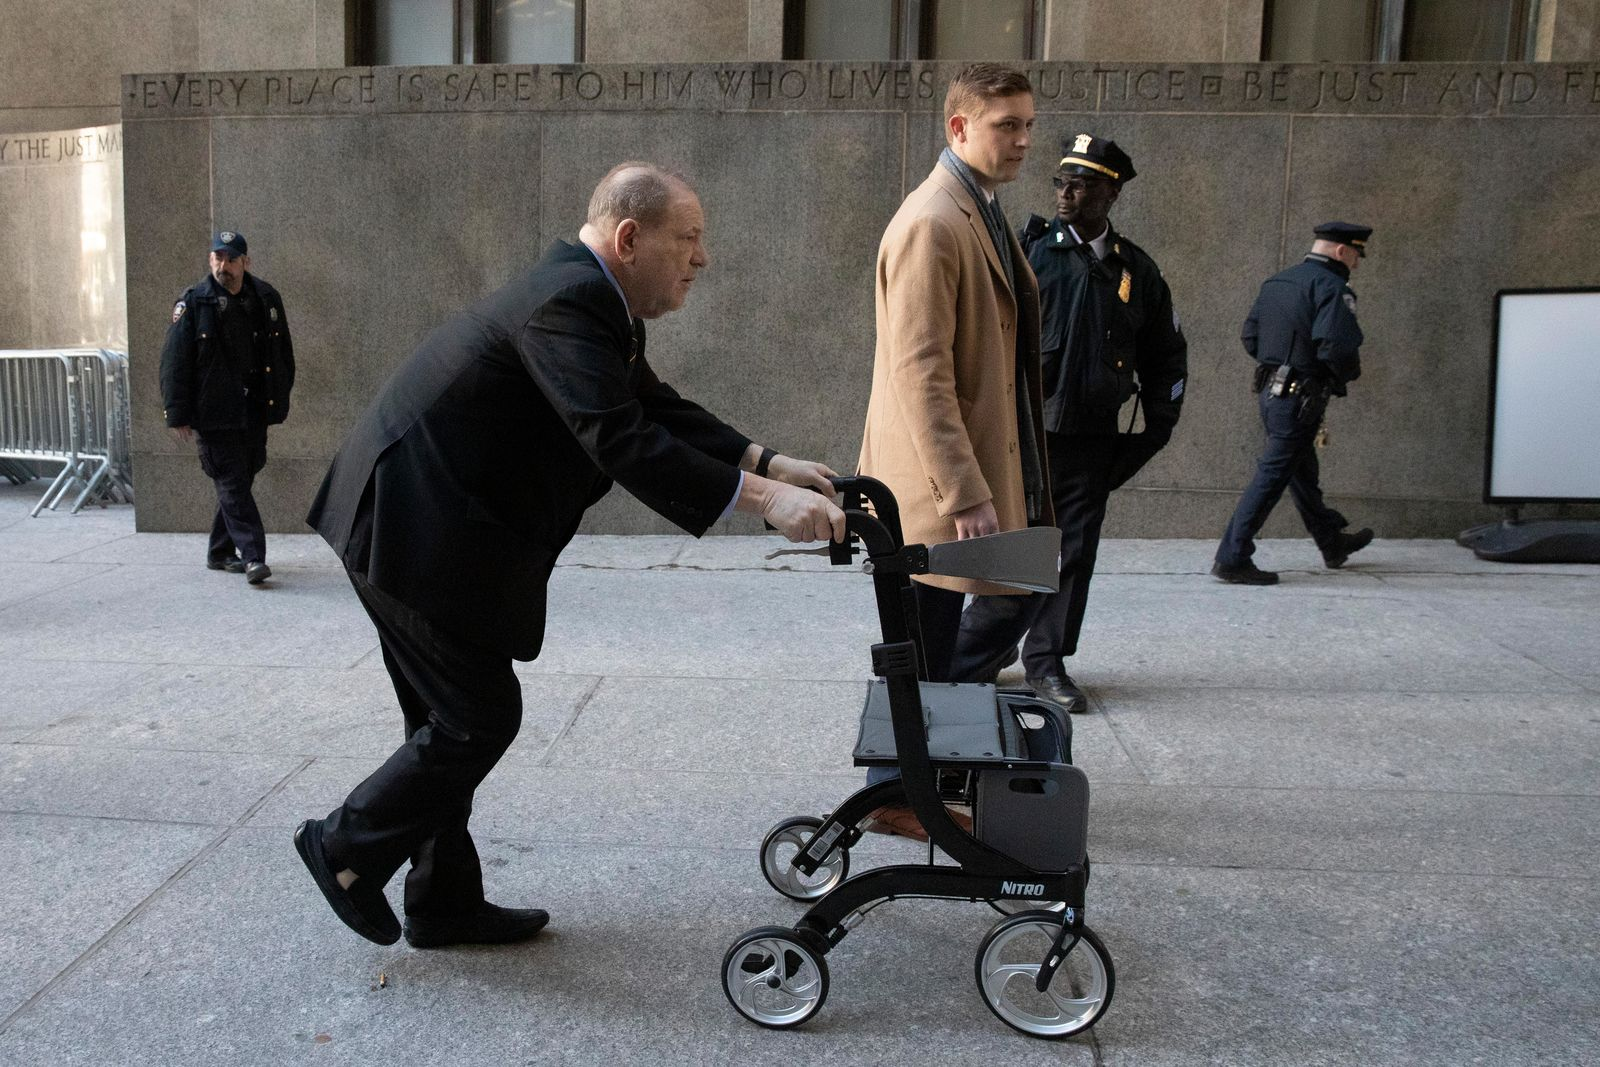 Harvey Weinstein arrives at court for his trial on charges of rape and sexual assault Friday, Jan. 24, 2020 in New York. (AP Photo/Mark Lennihan)